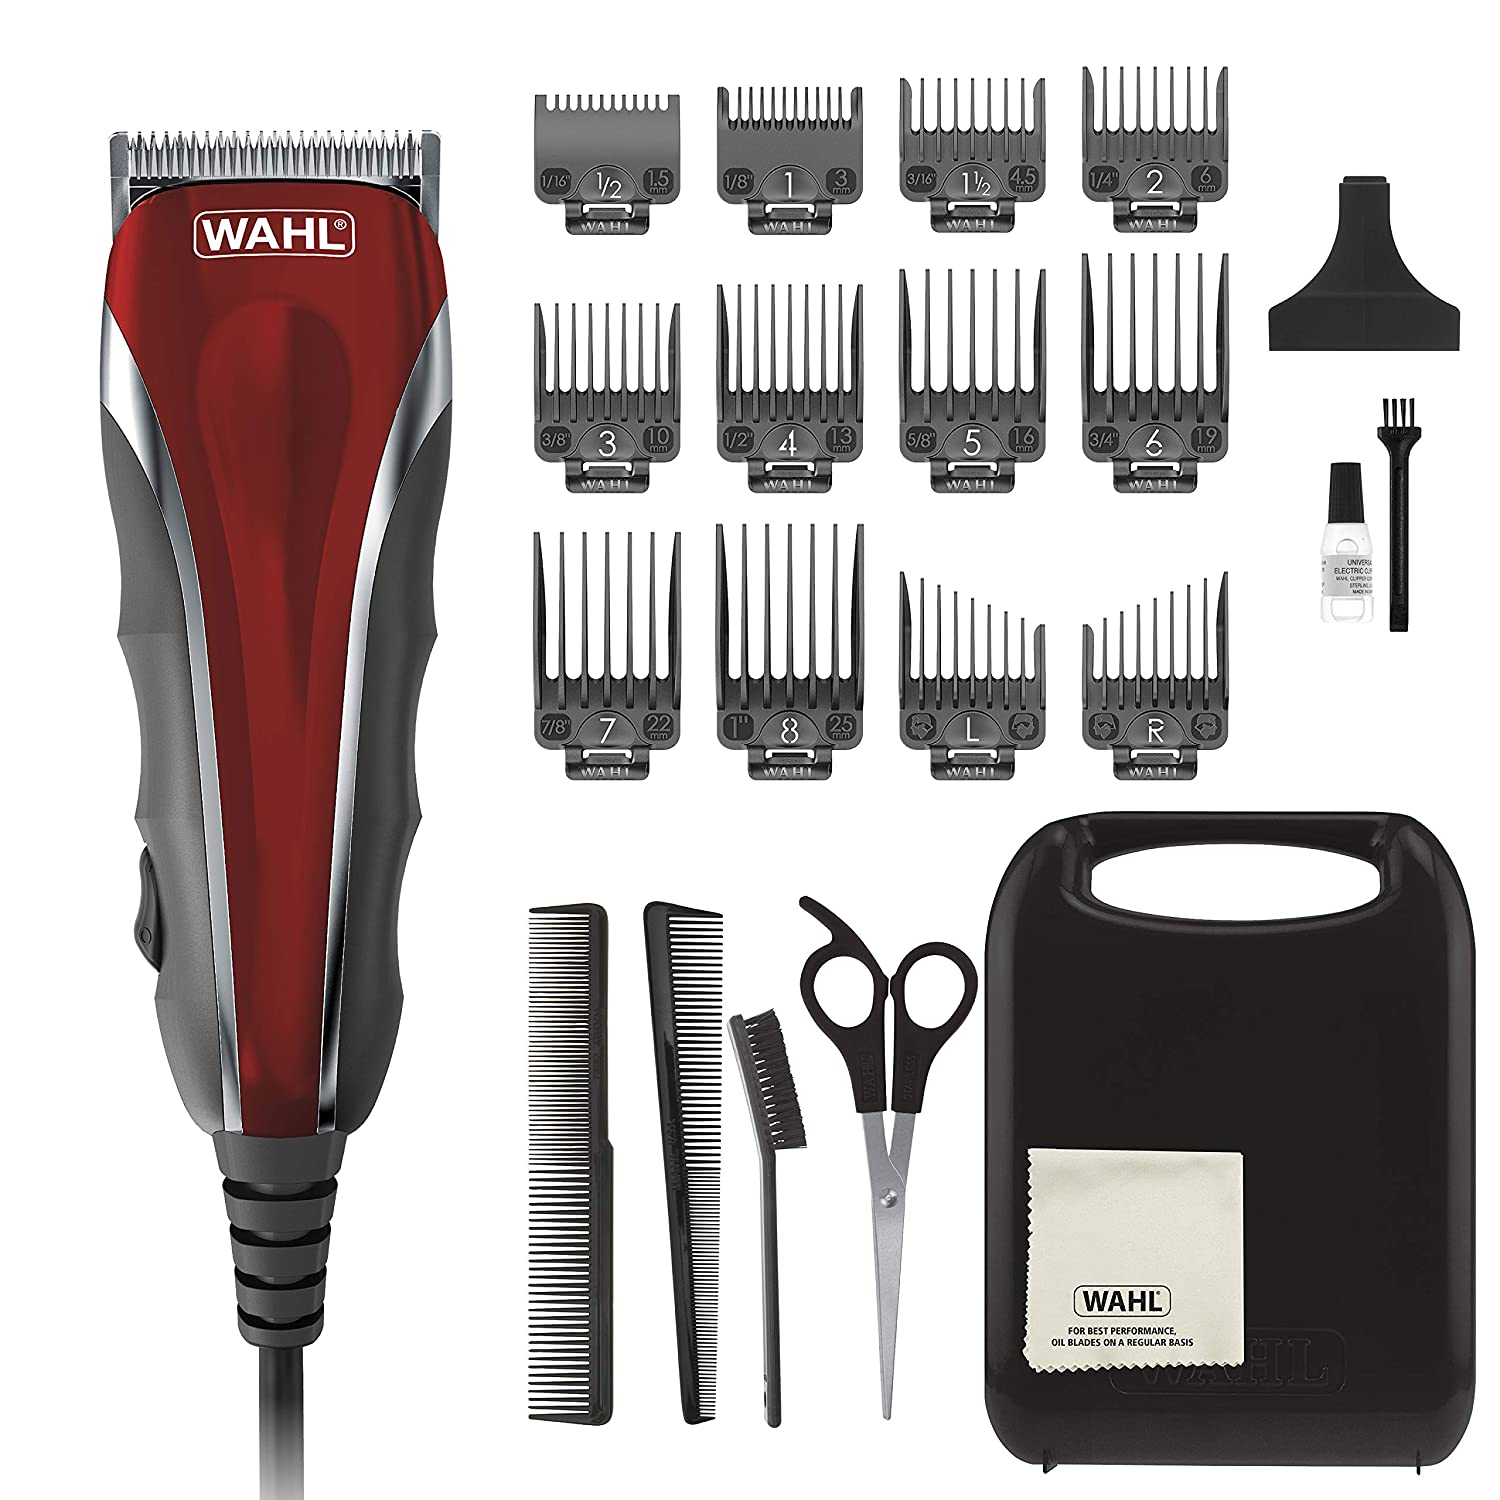 Amazon Com Wahl Model 79607 Clipper Compact Multi Purpose Haircut Beard Body Grooming Hair Clipper Trimmer With Extreme Power Easy Clean Blades Beauty